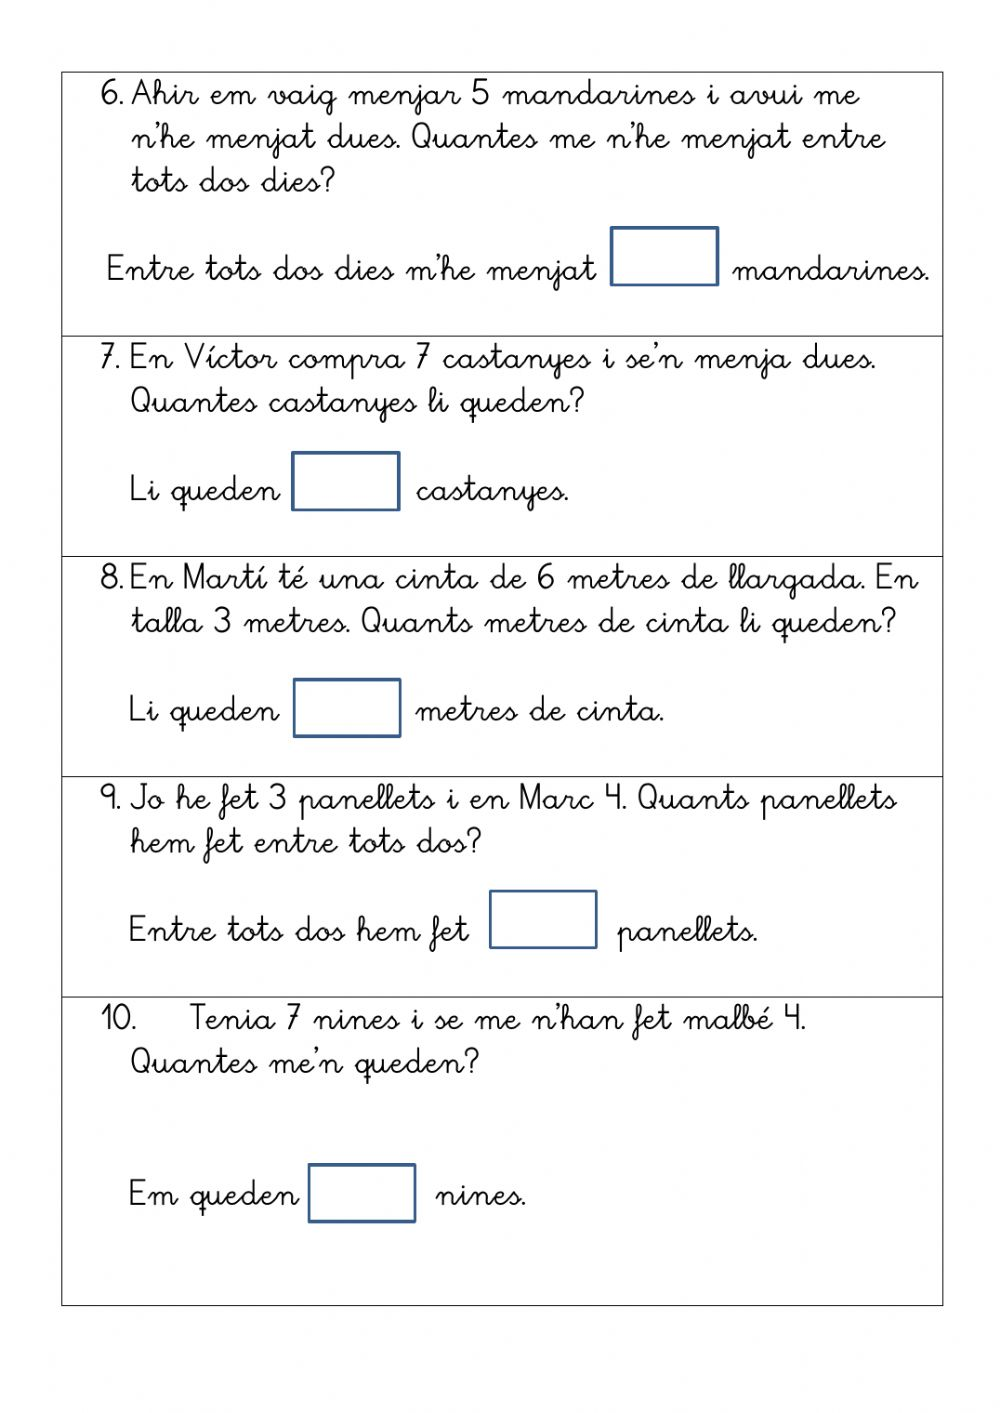 Problemes quinzet sèries 5.1-5.2 - Interactive worksheet